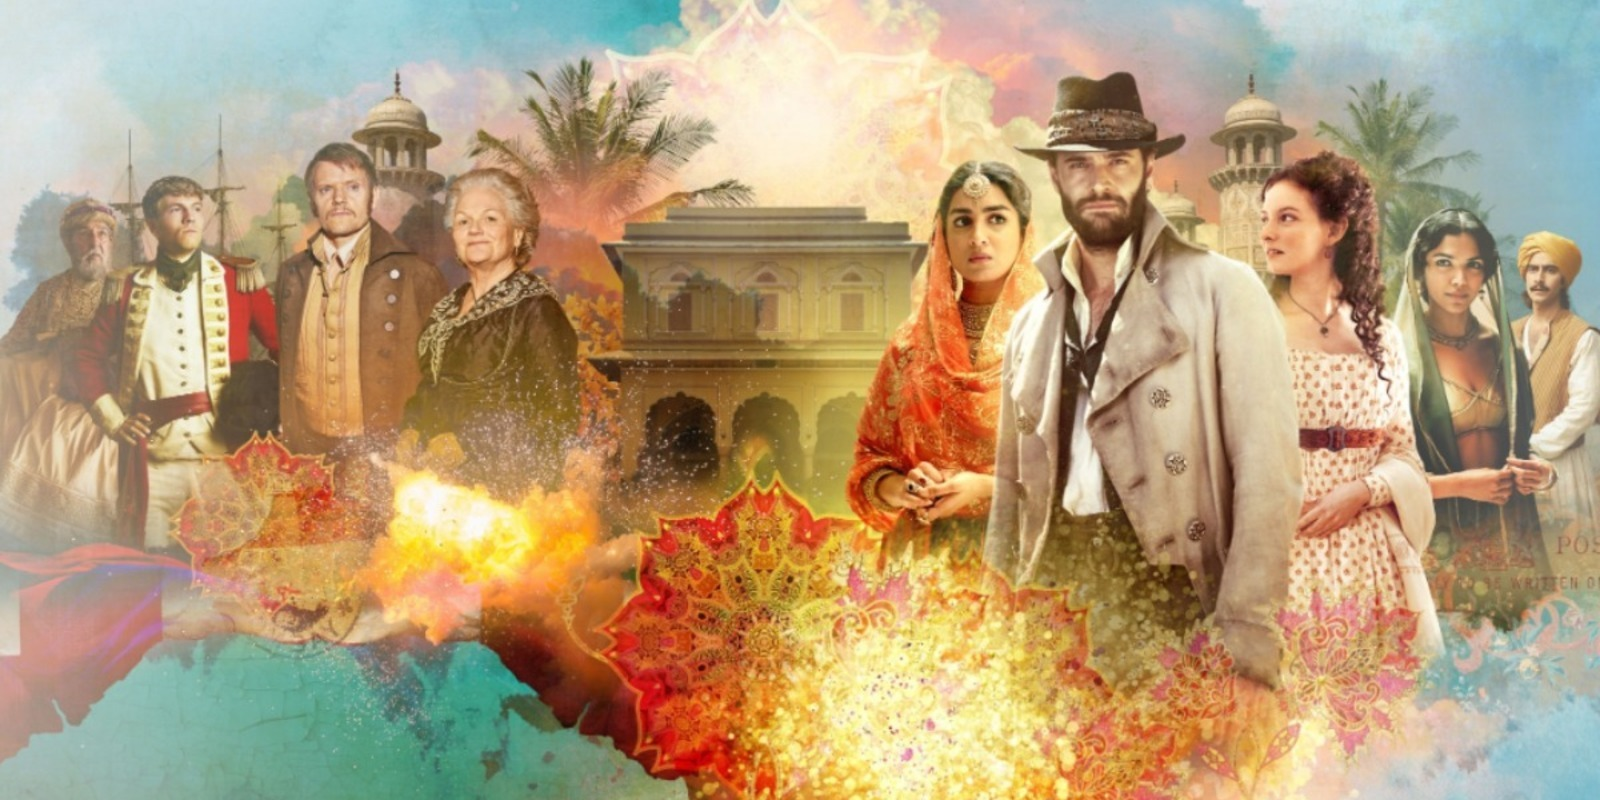 1596180277 34 beecham house season 1 article image